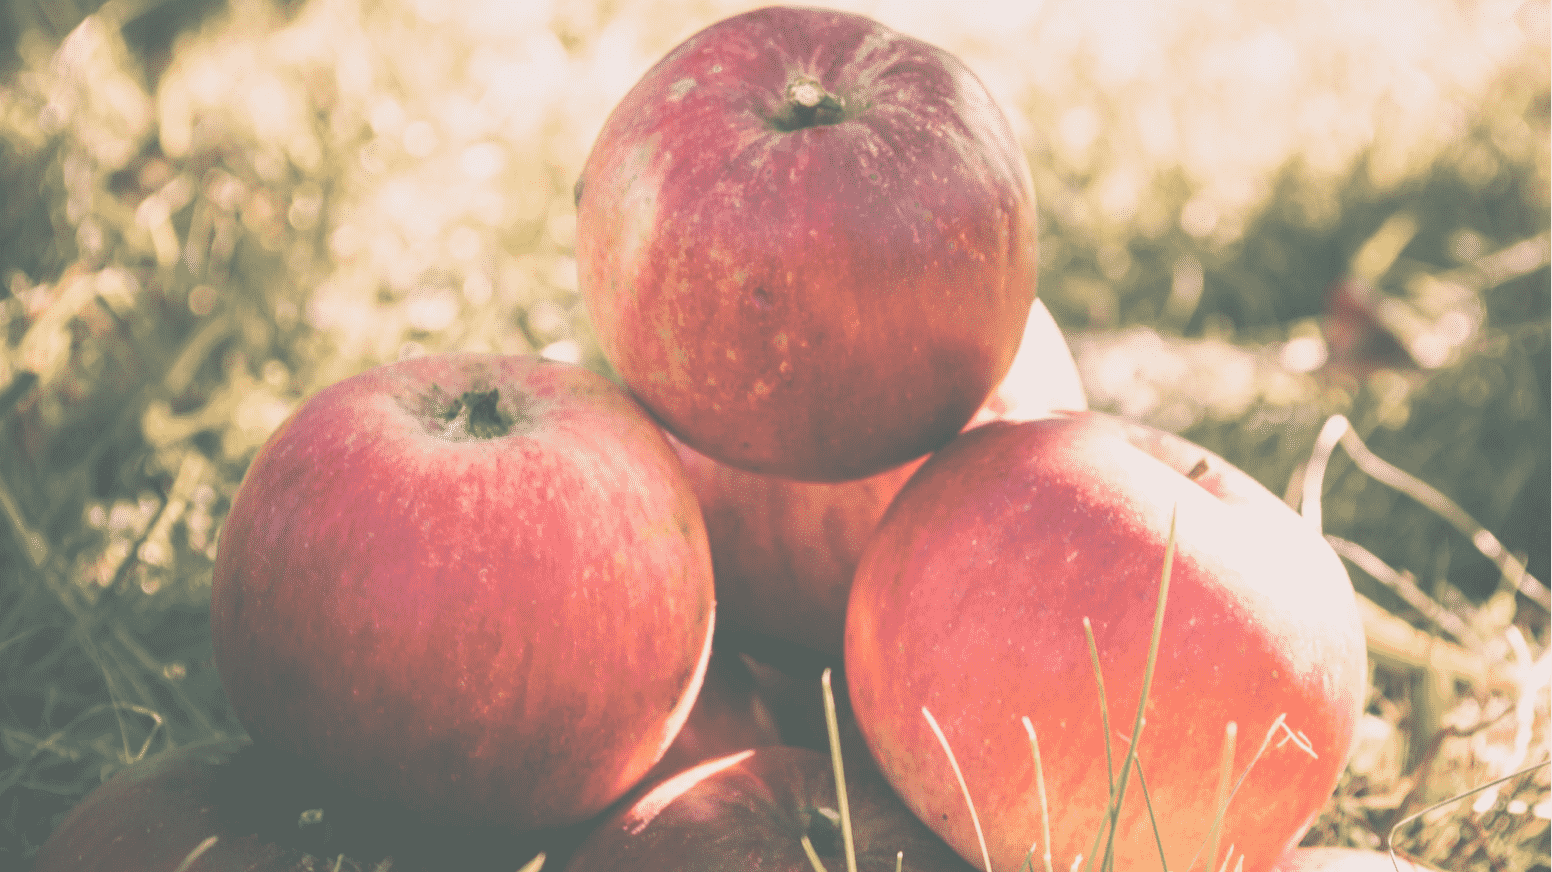 Apple Picking Orchards That Are Great for Families in NJ